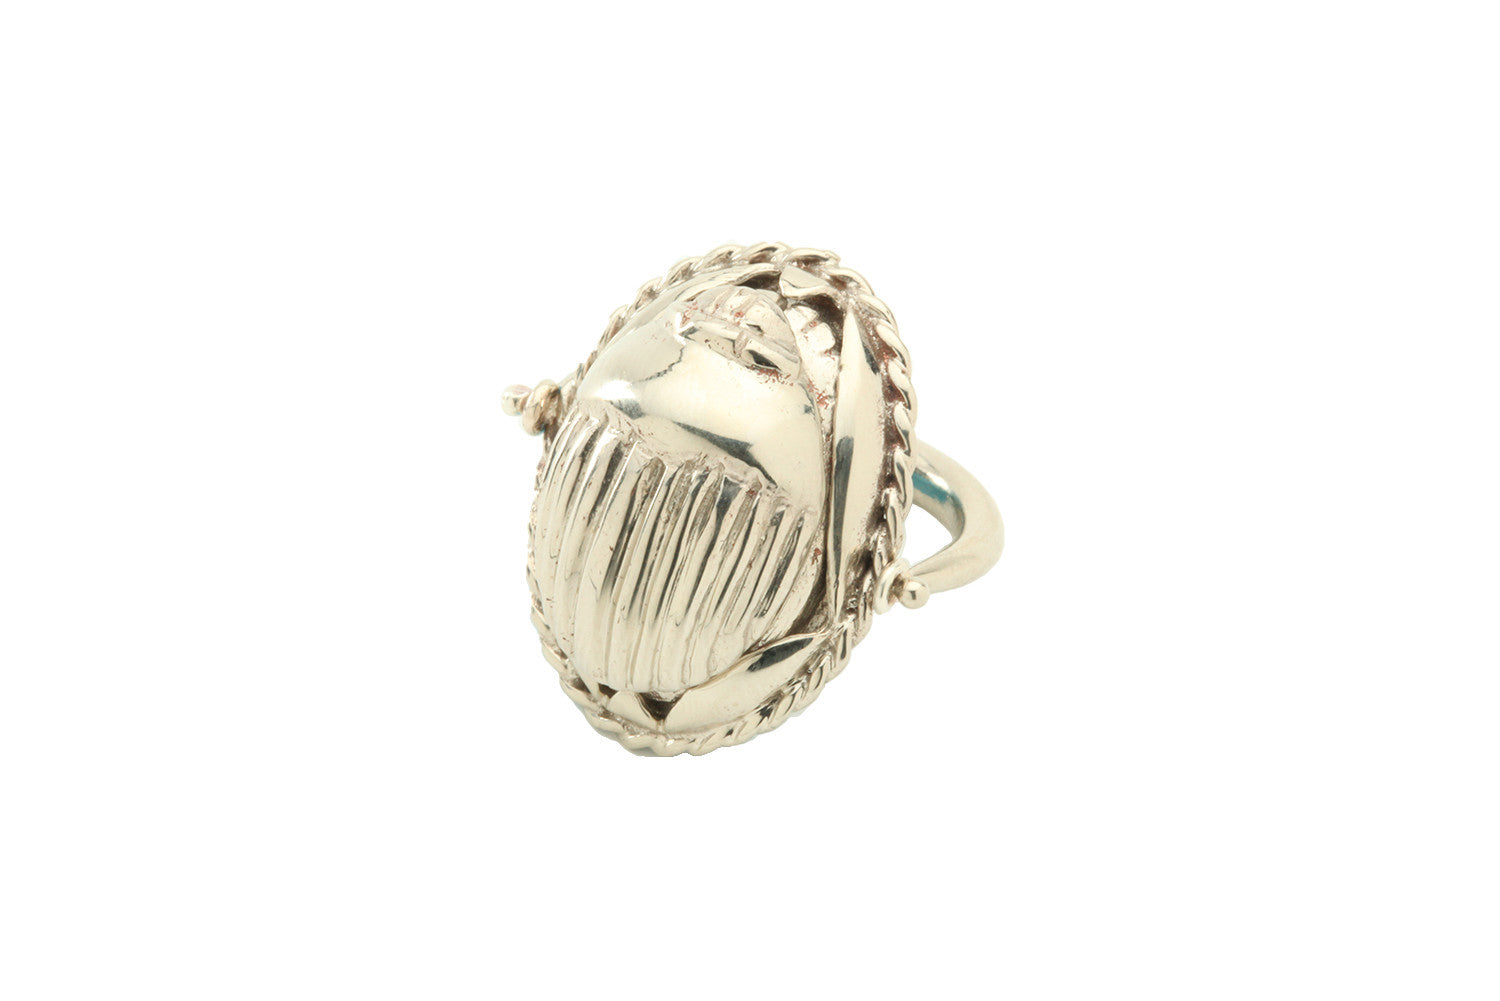 Large sterling silver swivel scarab ring, available also in 18K gold plated brass and gold.